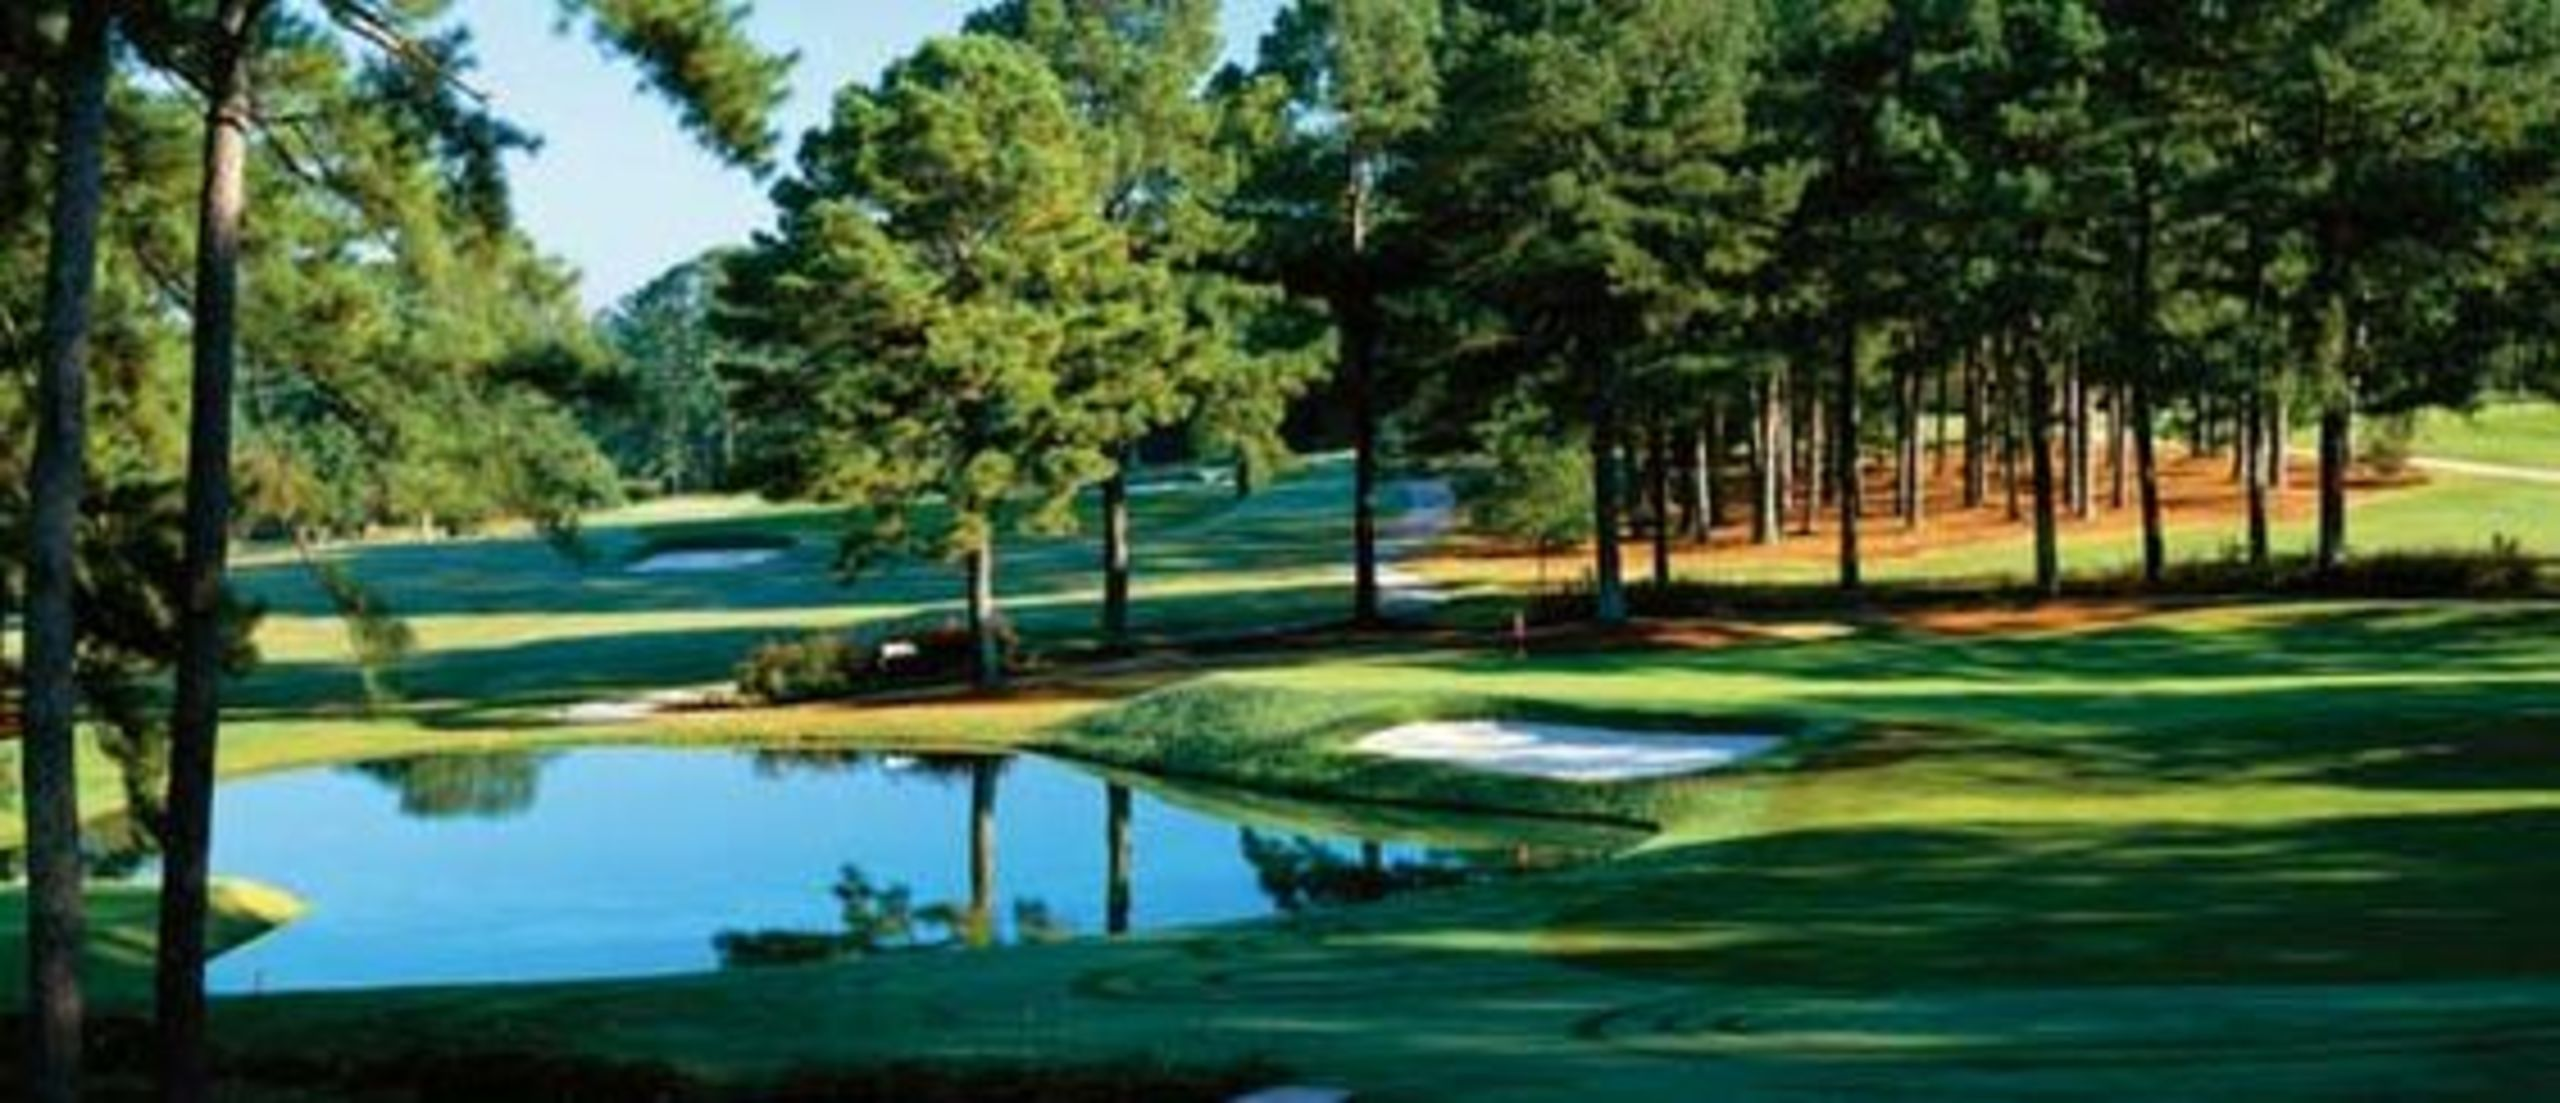 Augusta National - Home of the Masters